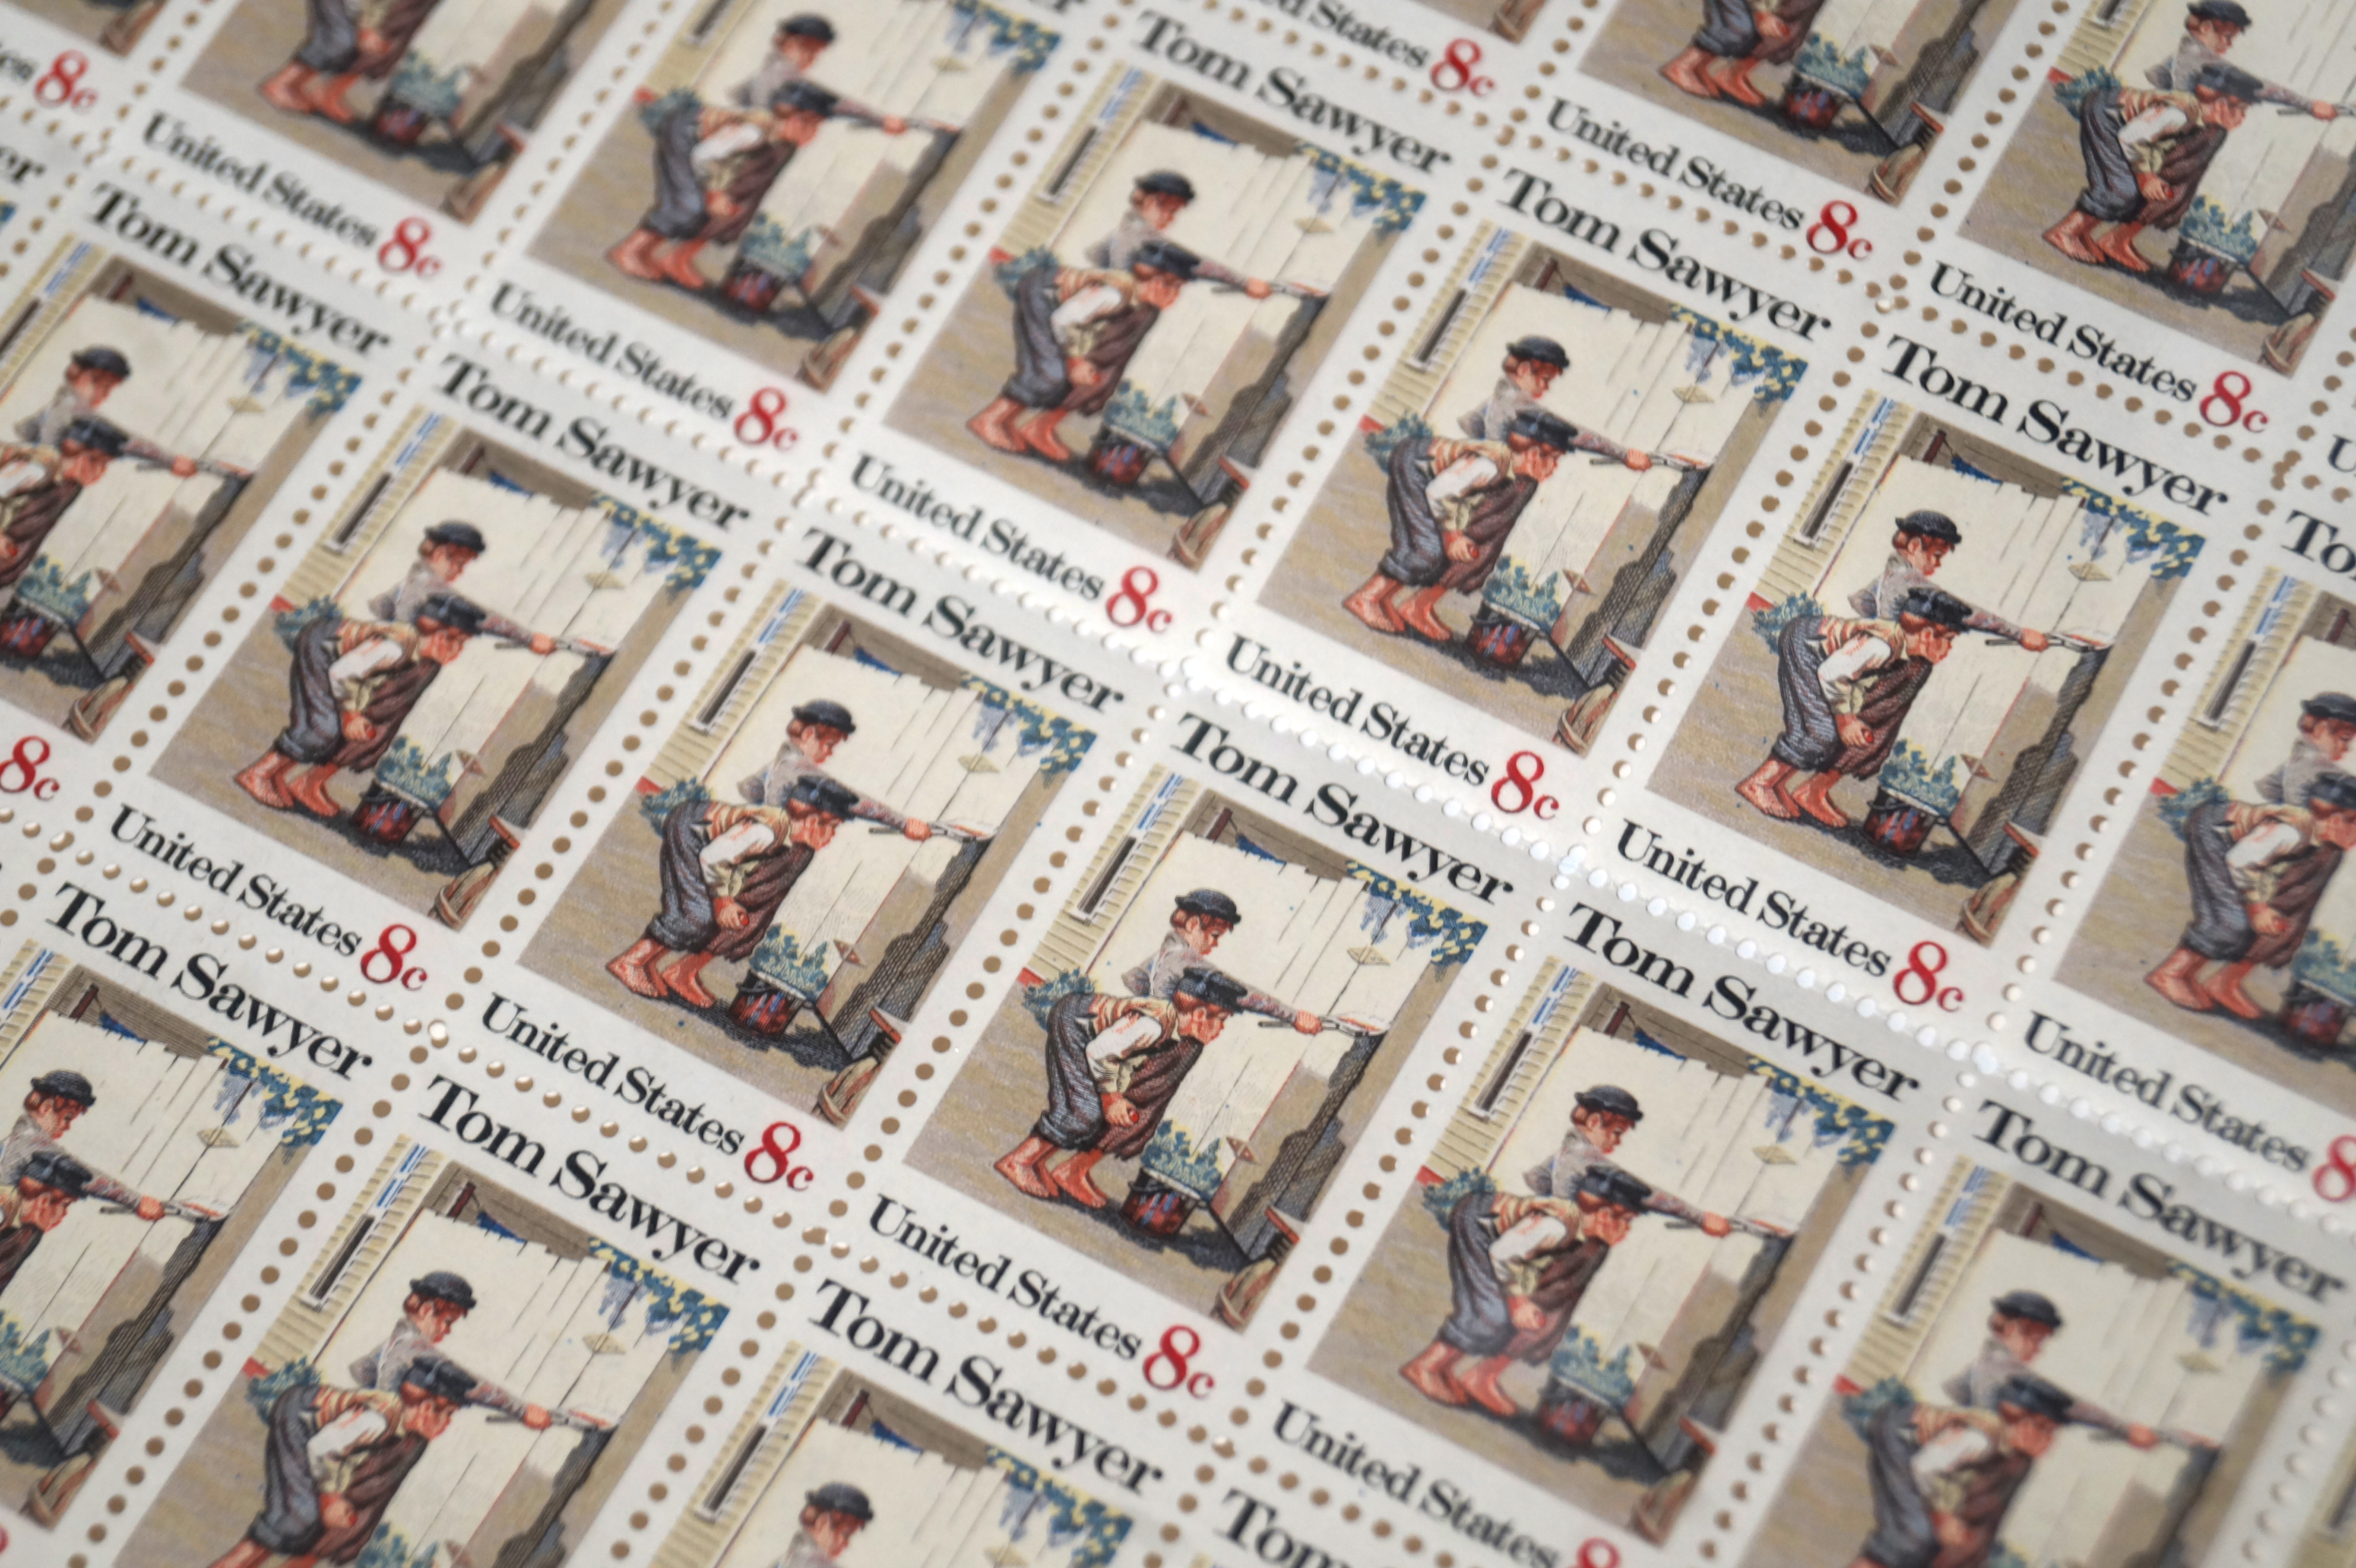 On October 13, 1972, the U.S. Postal Service released an 8-cent Tom Sawyer commemorative stamp to celebrate the popular novel written by Mark Twain.  This sheet of stamps was signed in the top left corner by sitting president, Richard M. Nixon.